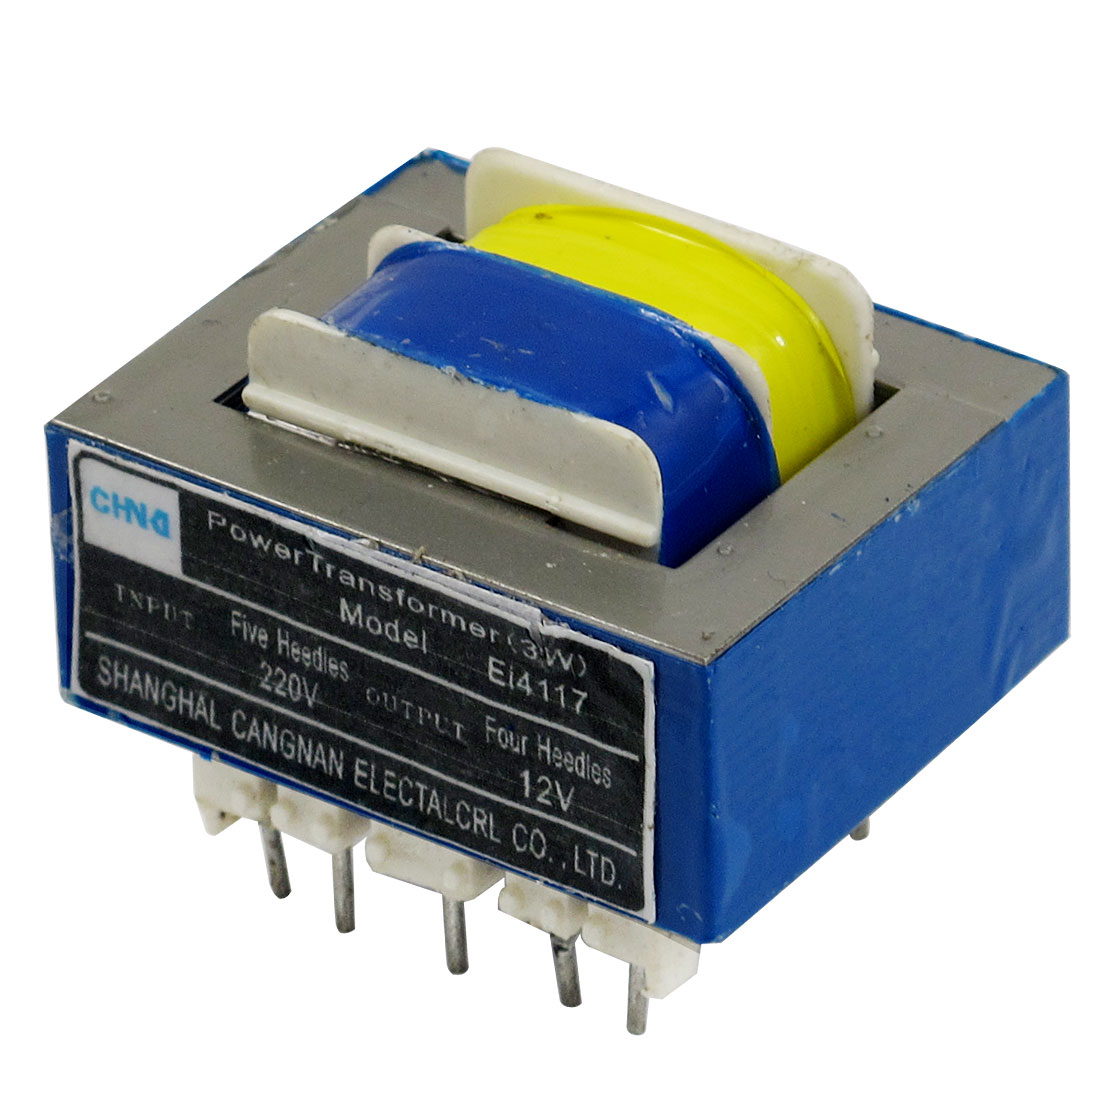 220V Input 12V 3W Output Ferrite Core EI Power Transformer w 9 Pins